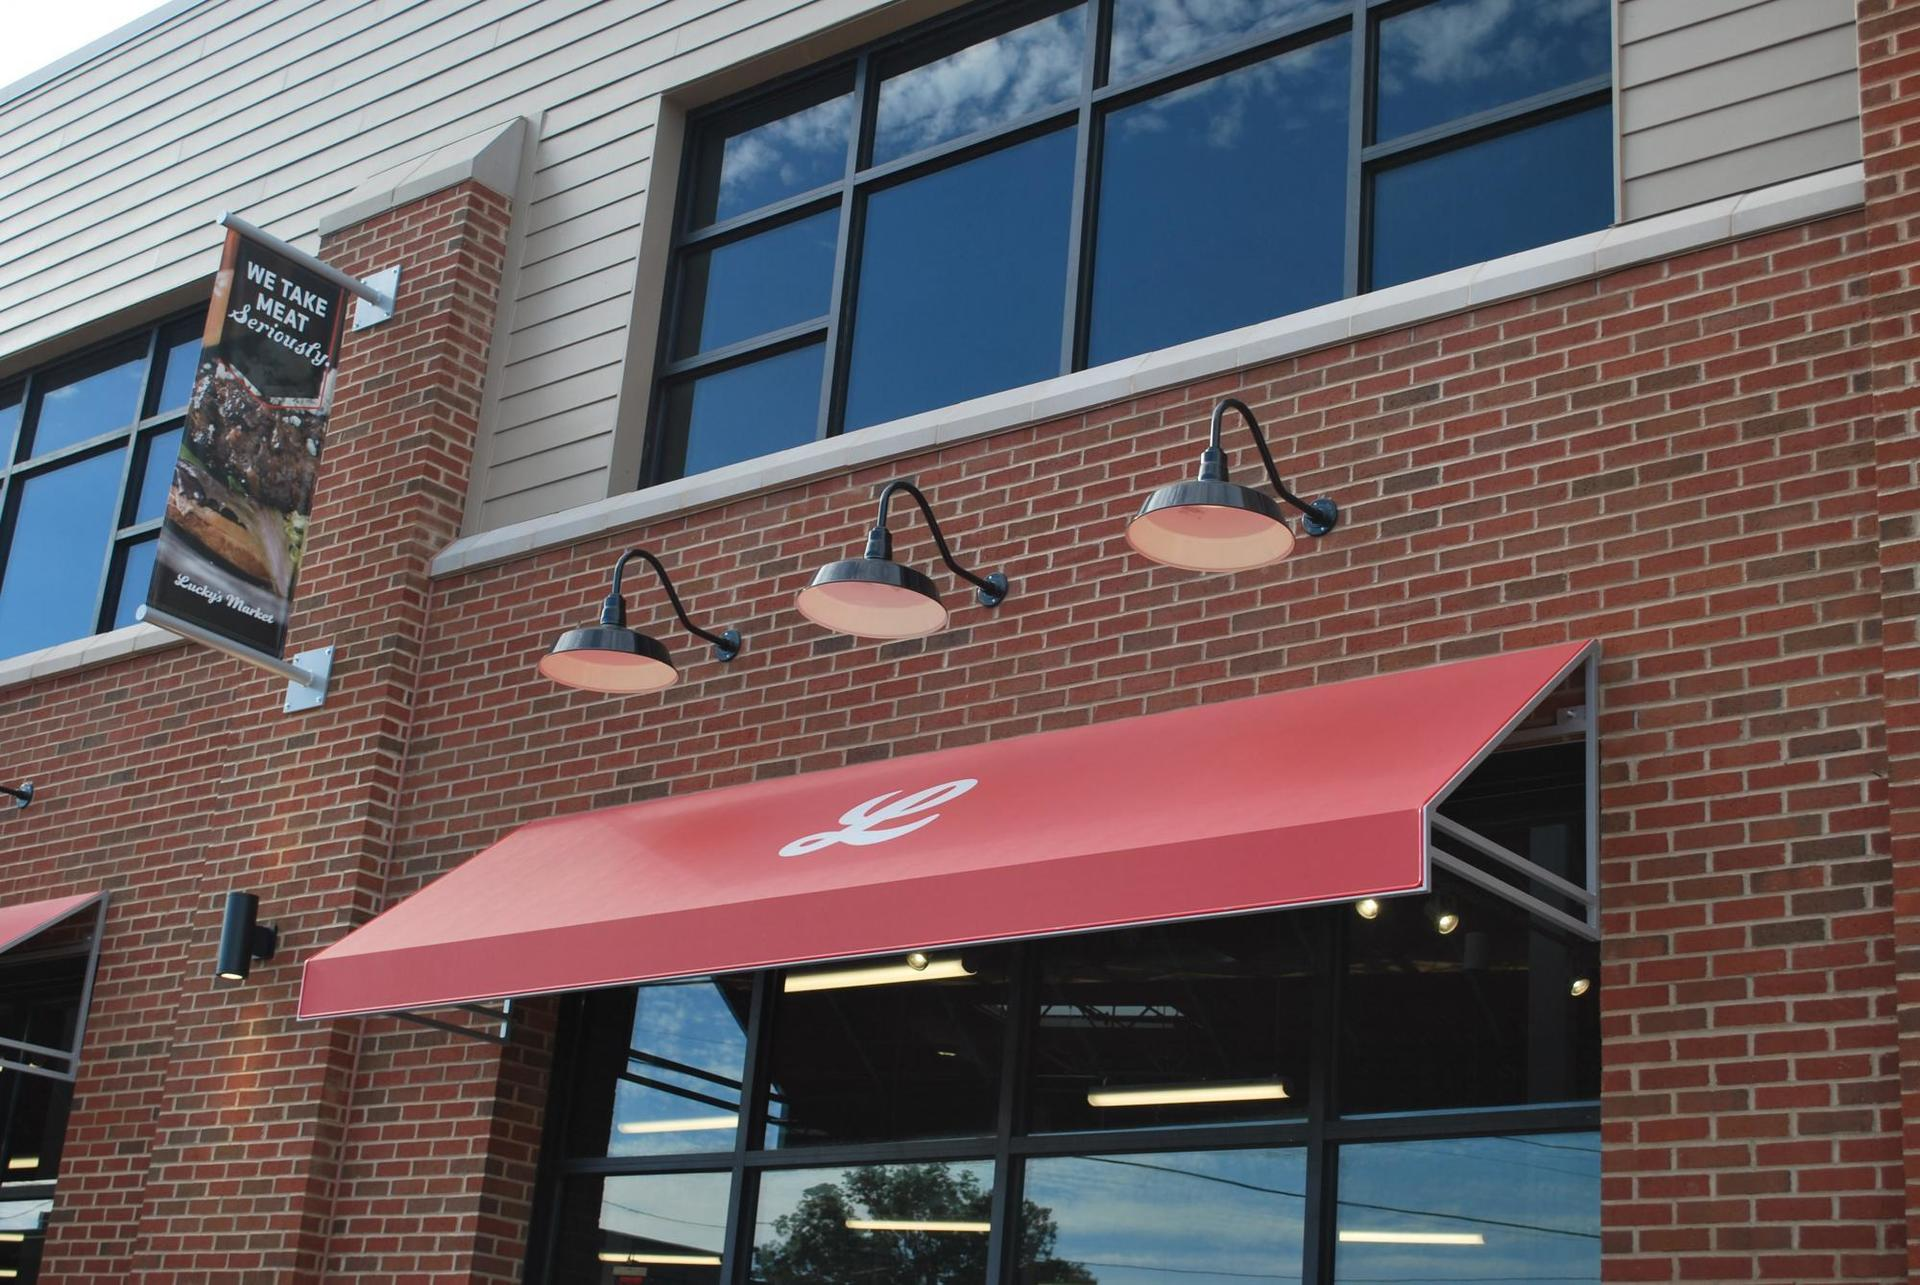 Lucky's Market, an organic supermarket chain, used Bock Lighting's Step Neck Dome light fixtures at their Columbus, Ohio location.